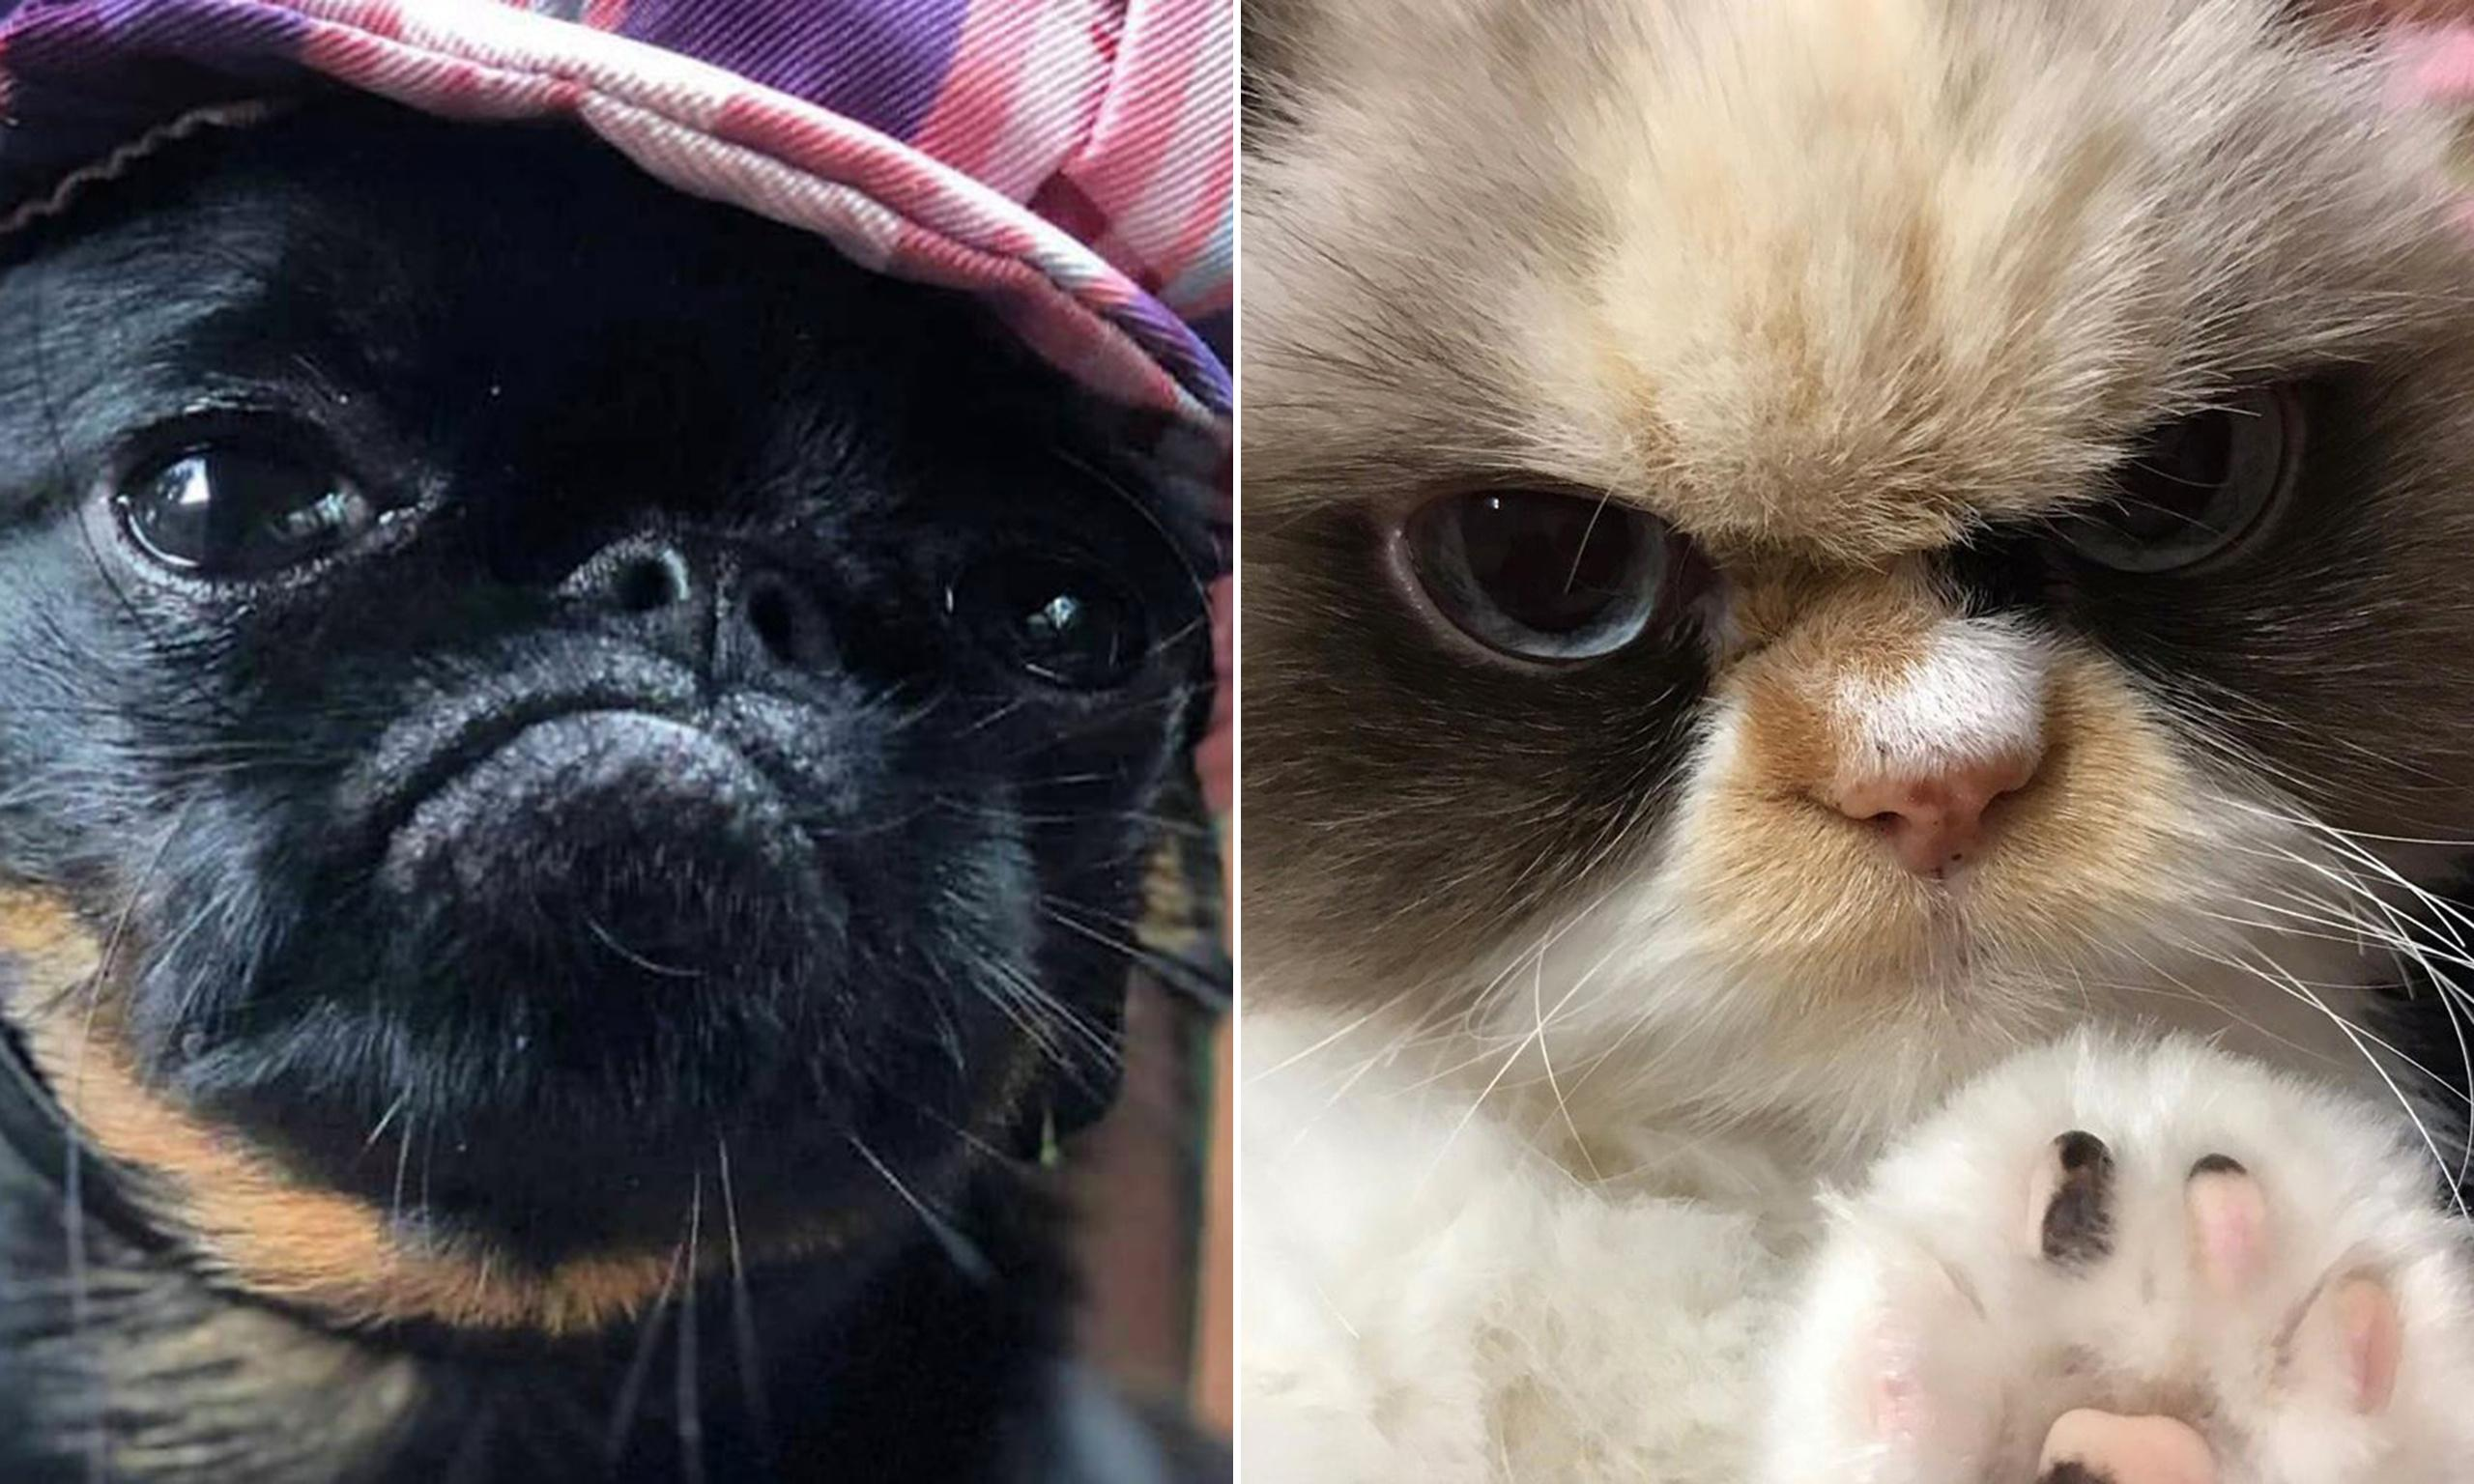 Reigning cats and dogs: why grumpy animals rule the internet